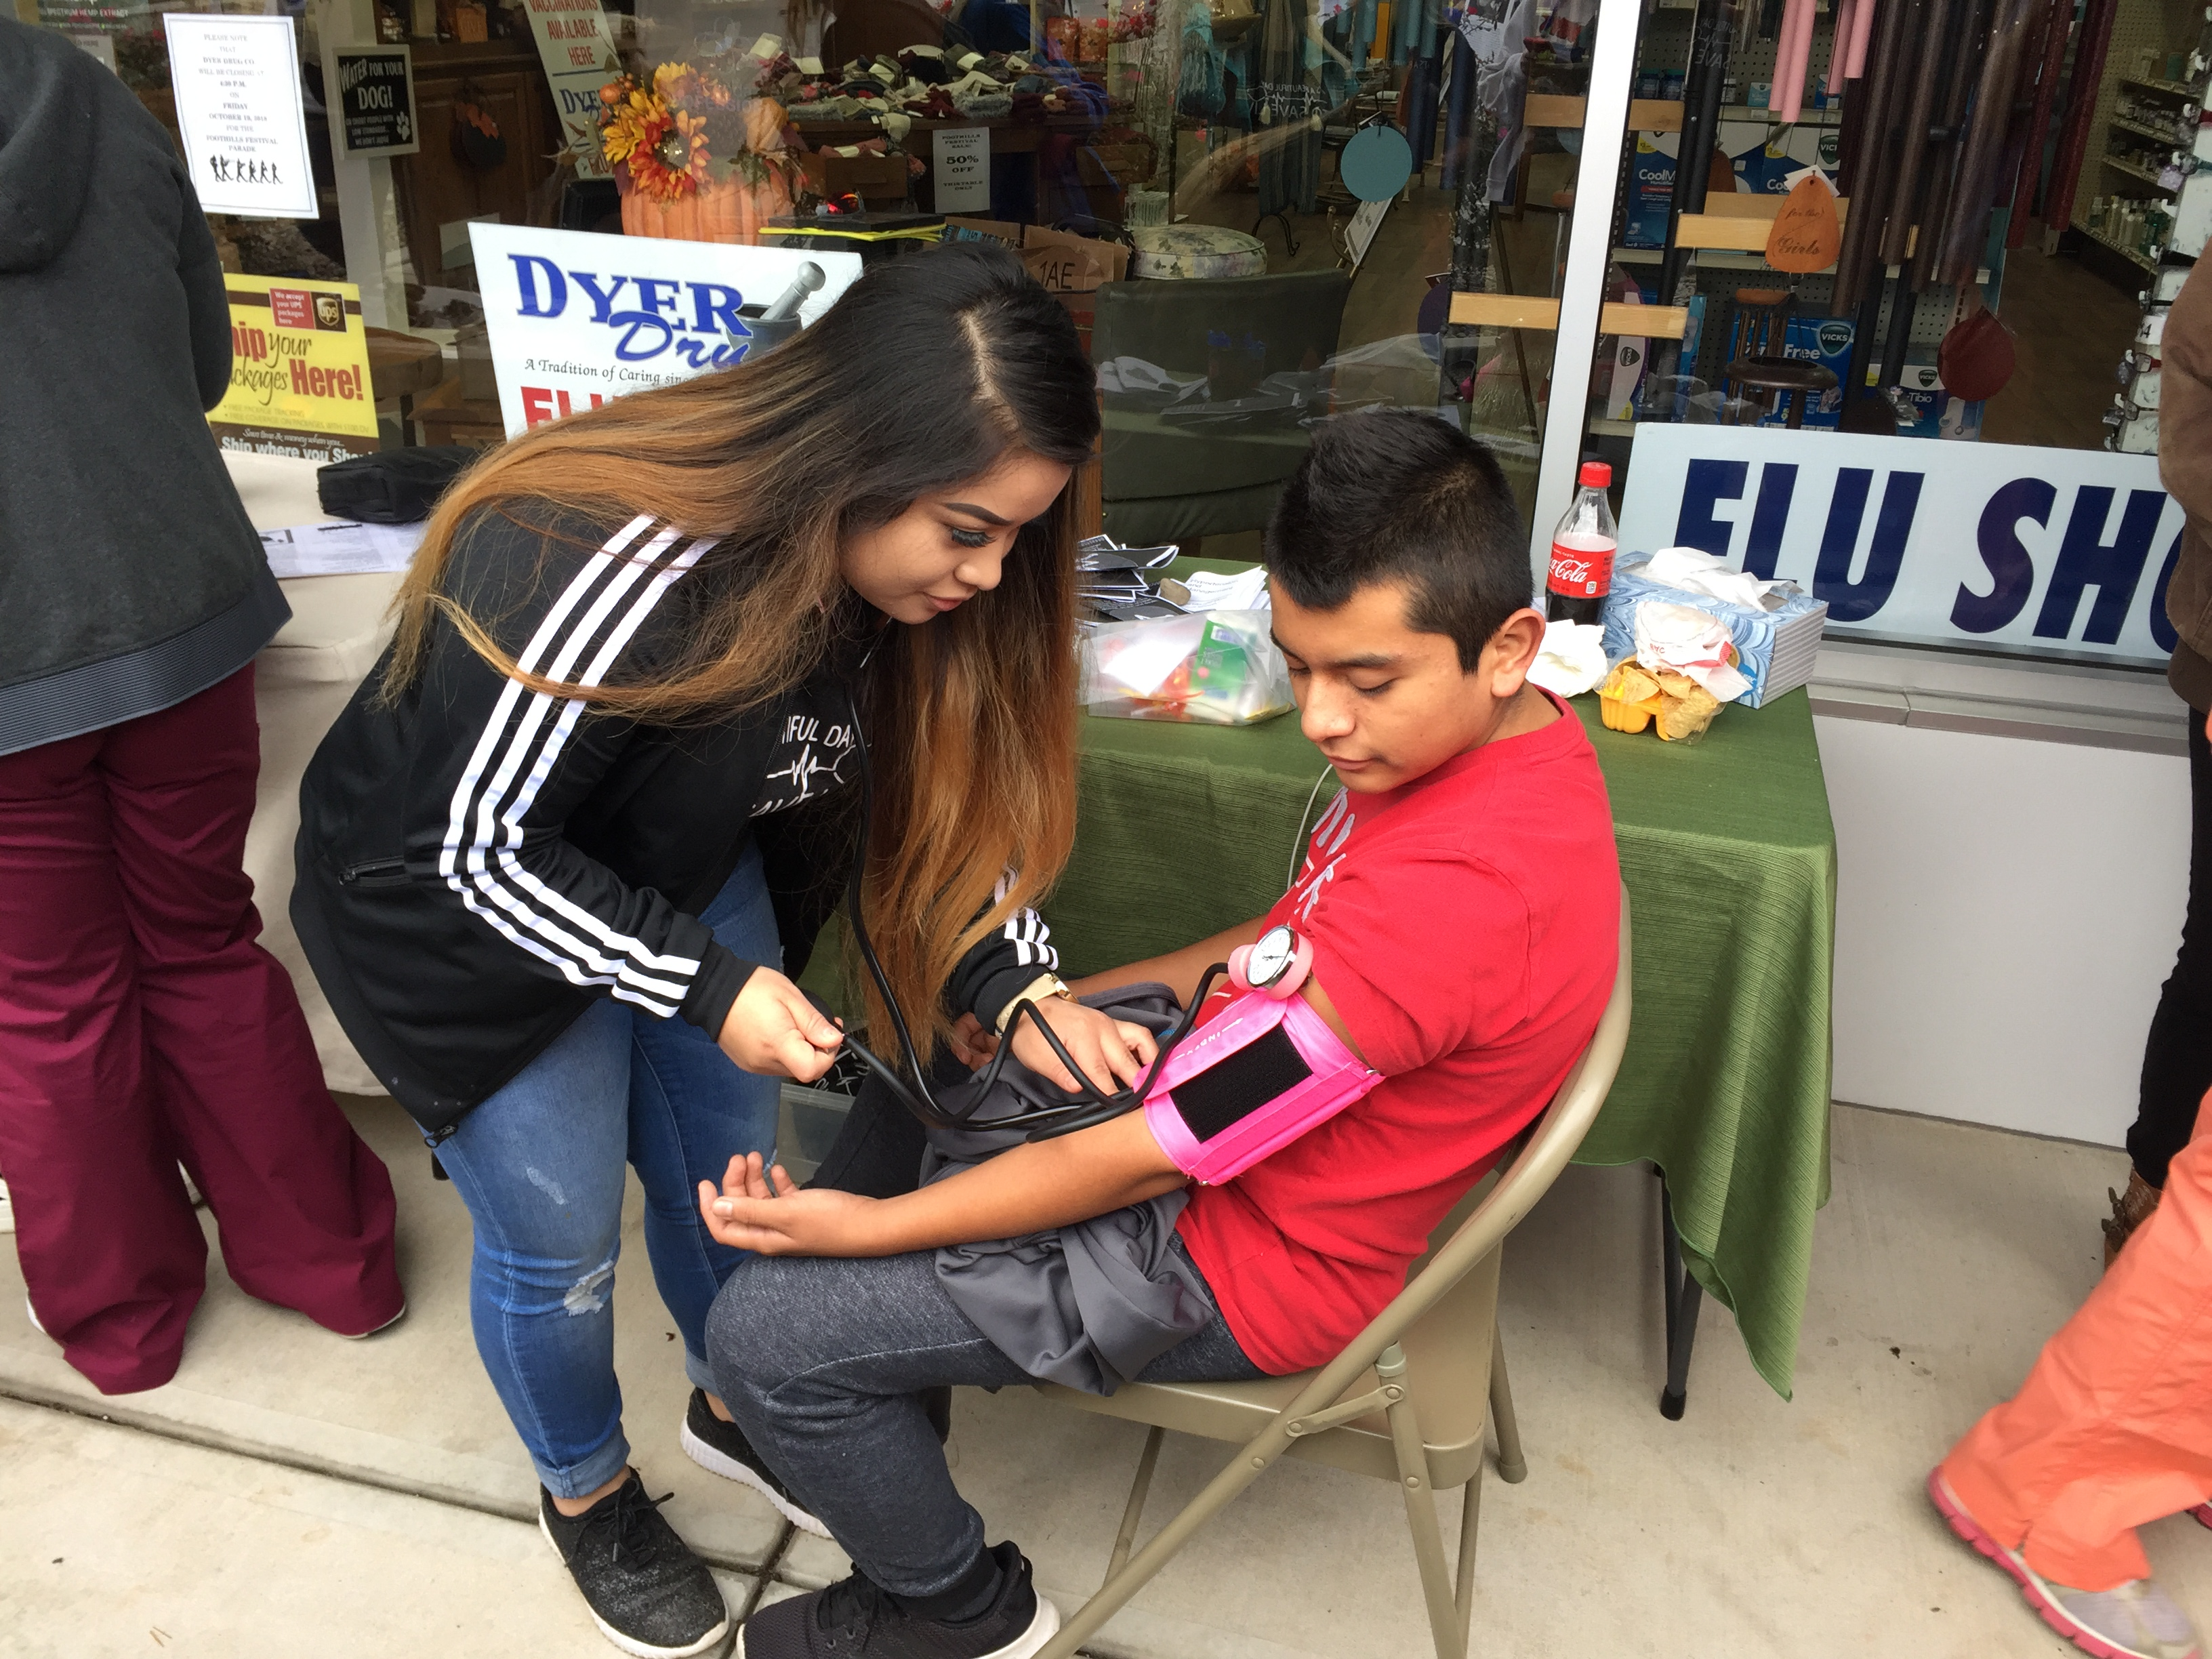 Nurse Aide program students got hands-on experience at a local Health Fair.